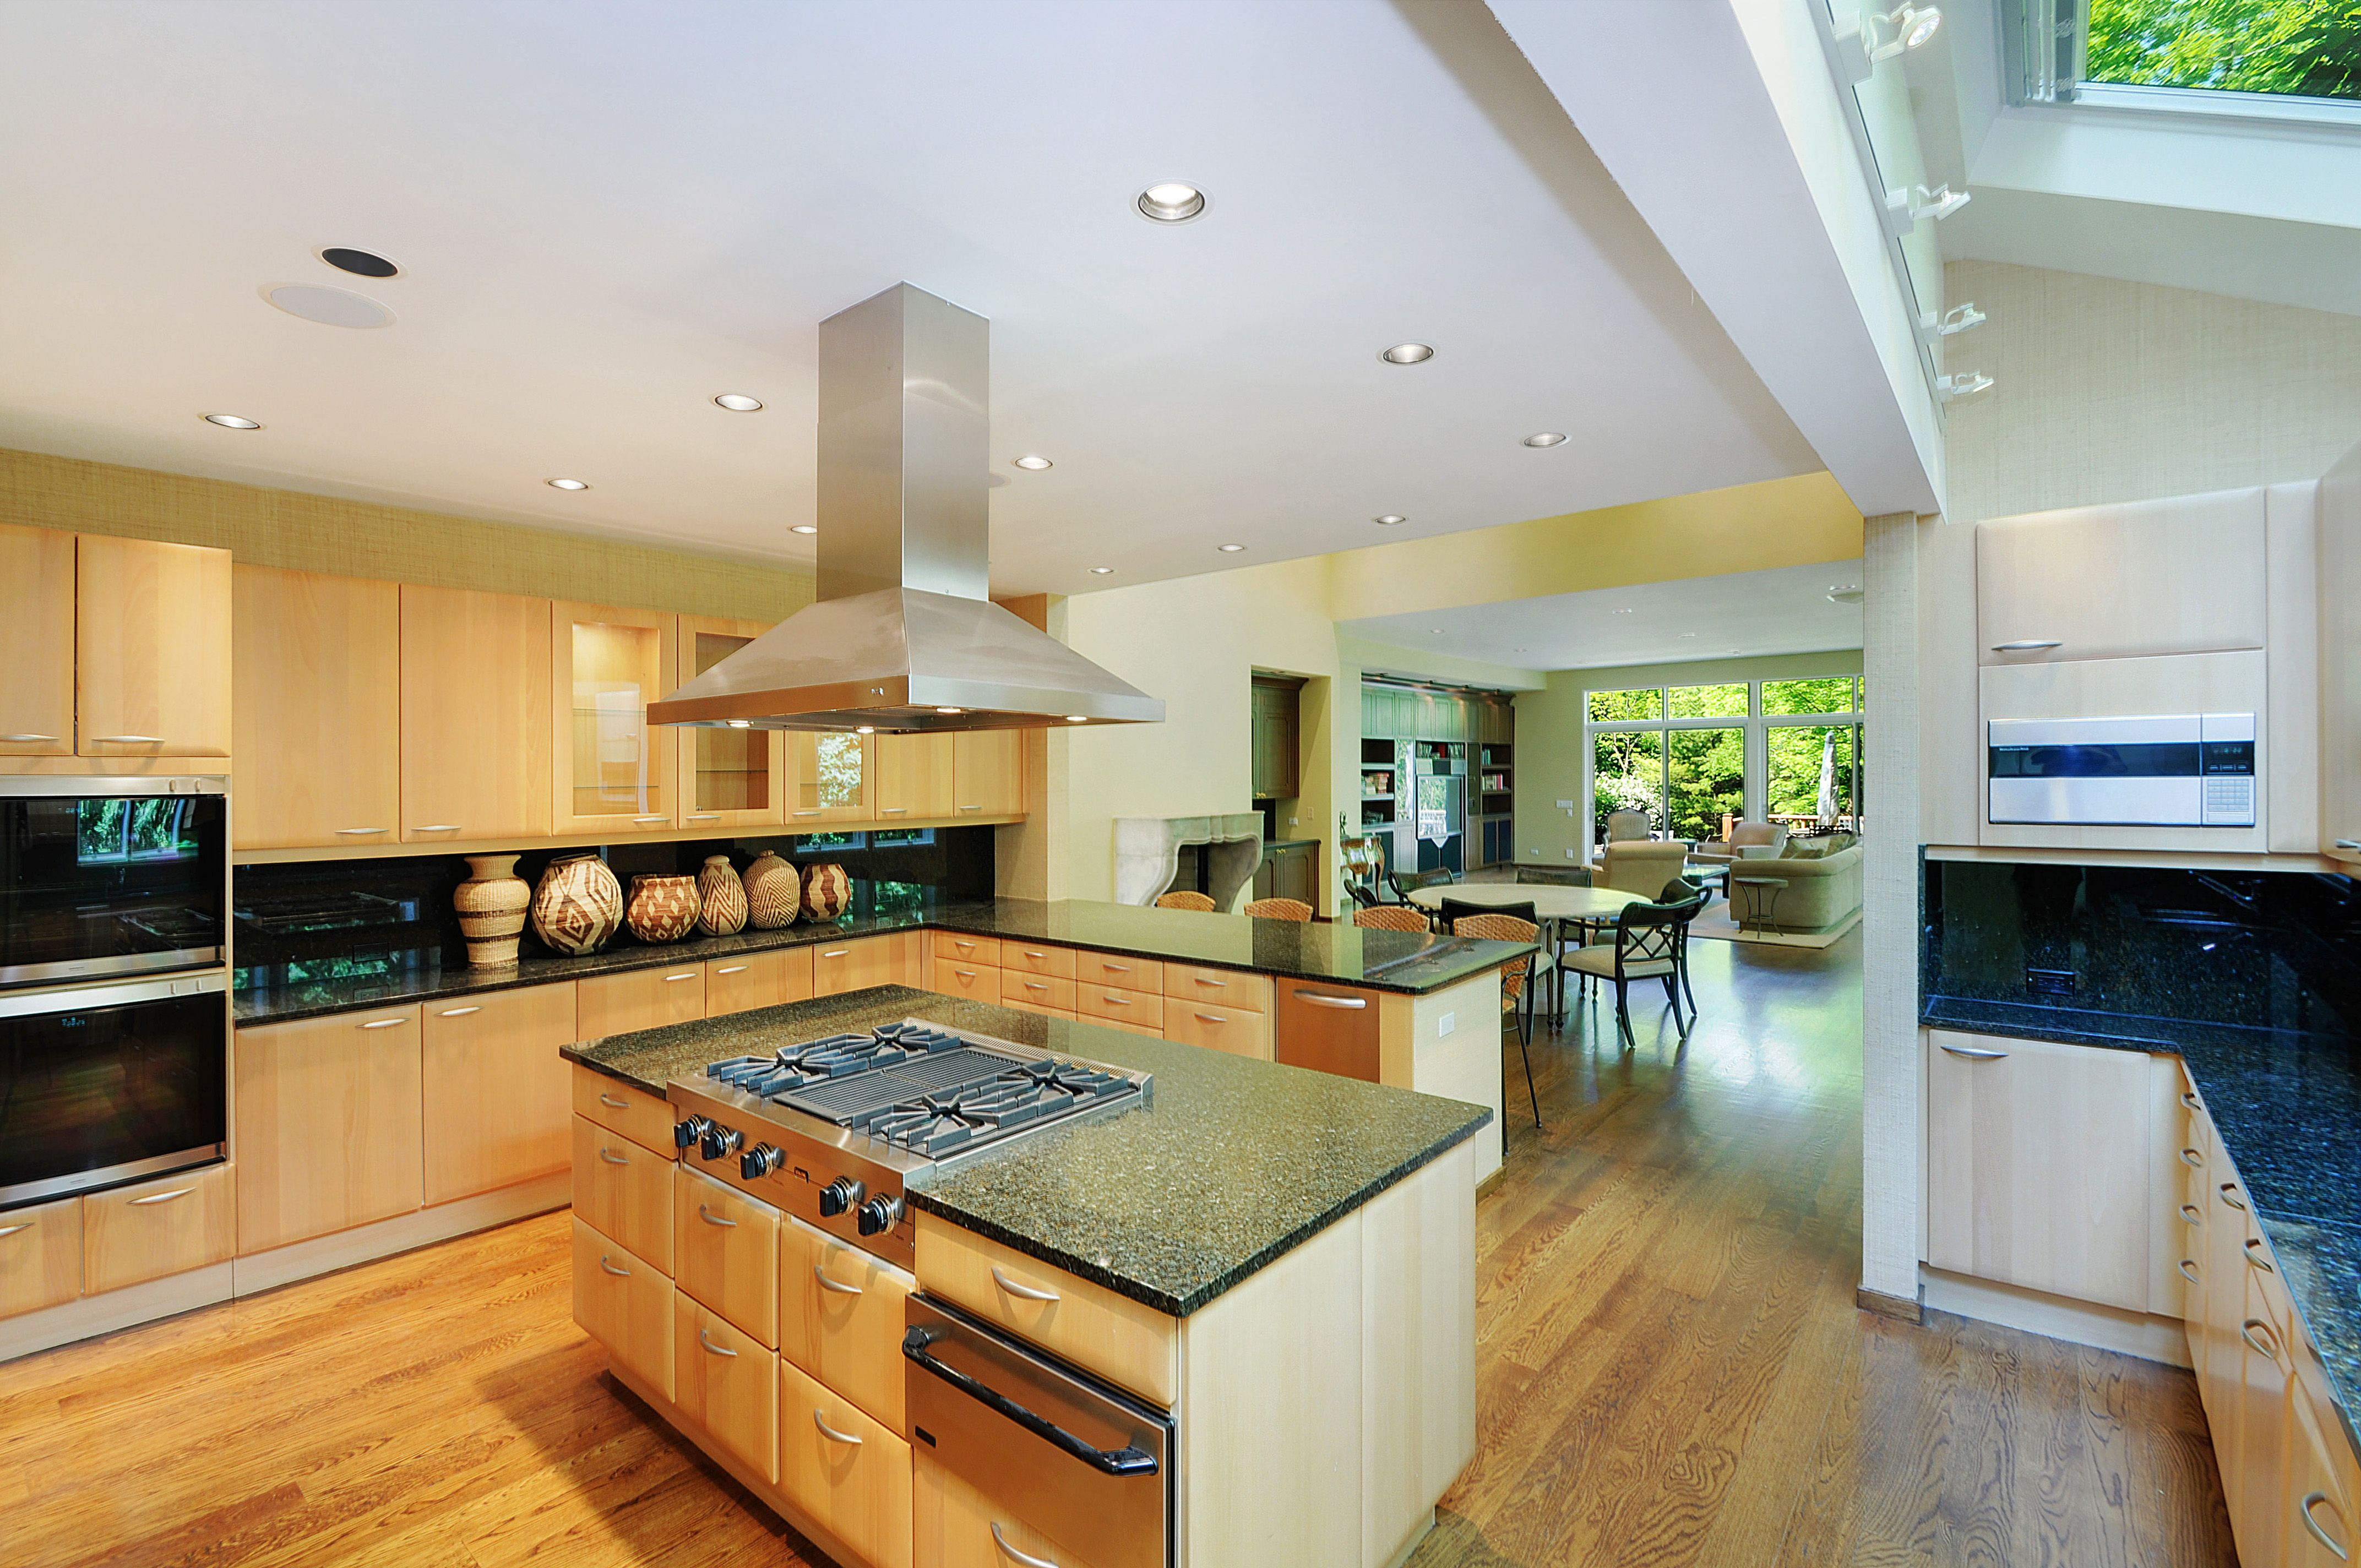 Types Of Kitchens Kitchens What's Your Ideal Kitchen Type  The Real Estate Beauty